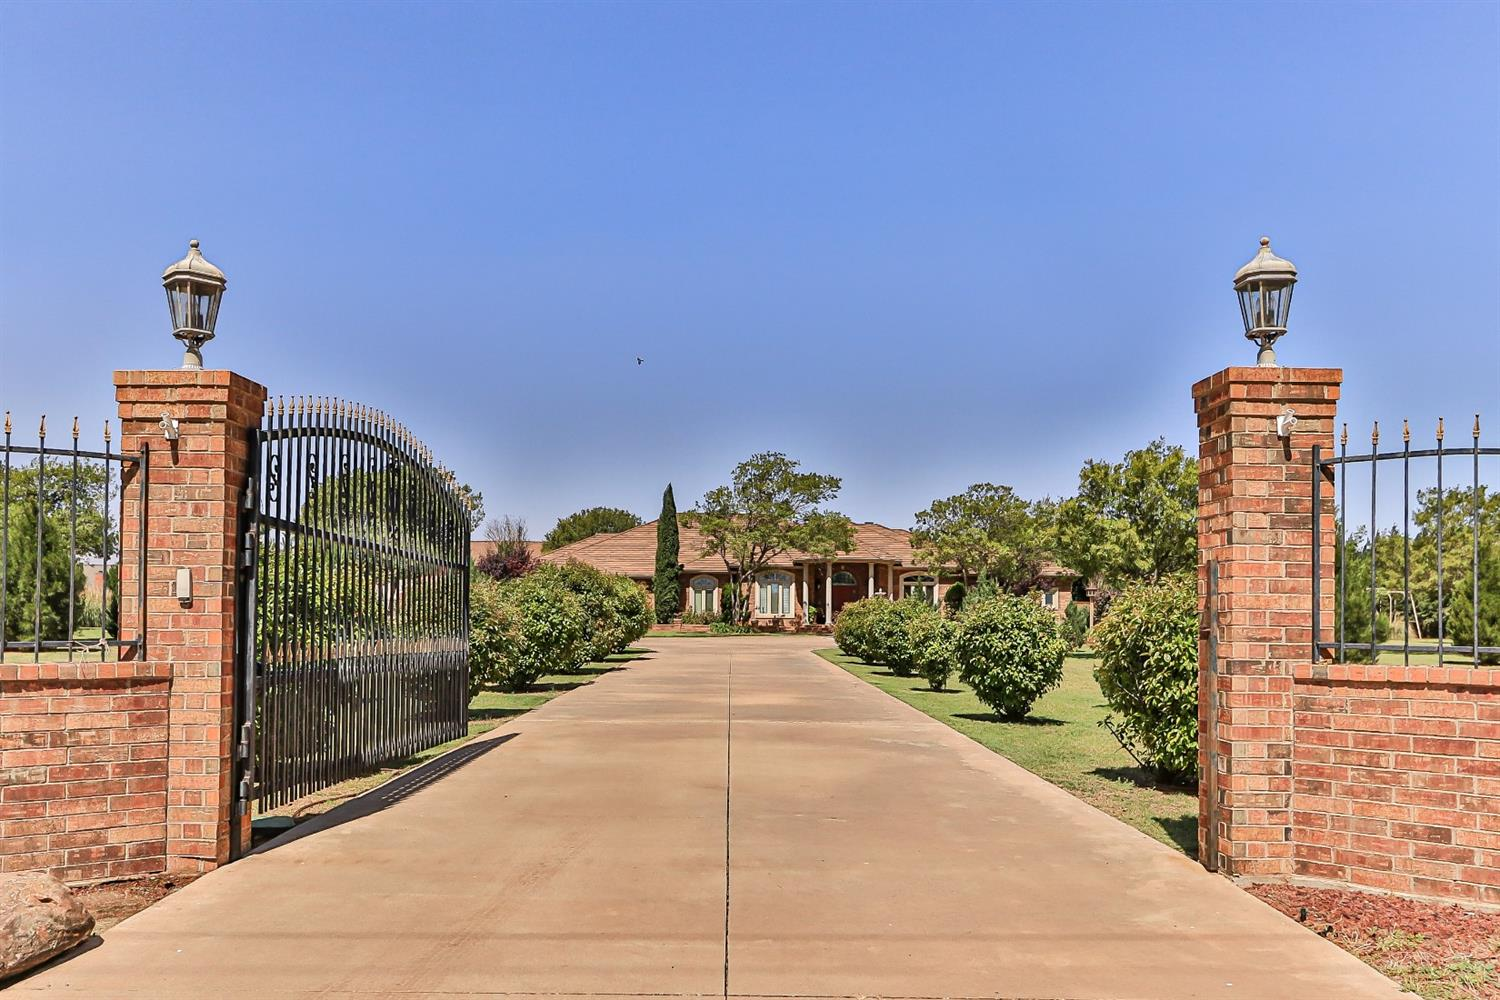 Breathtaking, rare opportunity estate like home off of South Slide Road sits on 2.76 acres. Beautiful gated entry makes its way to the front to a circle drive.  Entire property features 4 beds plus office, split basement with separate media room, covered patio, a pool with a  separate patio, a520 SF apartment, and 2700 SF bricked /shop in prestigious Highland Oaks-Lubbock Cooper ISD. Custom built home features amazing features including special molding and trim. Cooks dream of a  kitchen with double ovens and island. Outdoor kitchen with lots of seating including a gazebo in backyard.  Great place to entertain family and friends. Why not make it yours today.